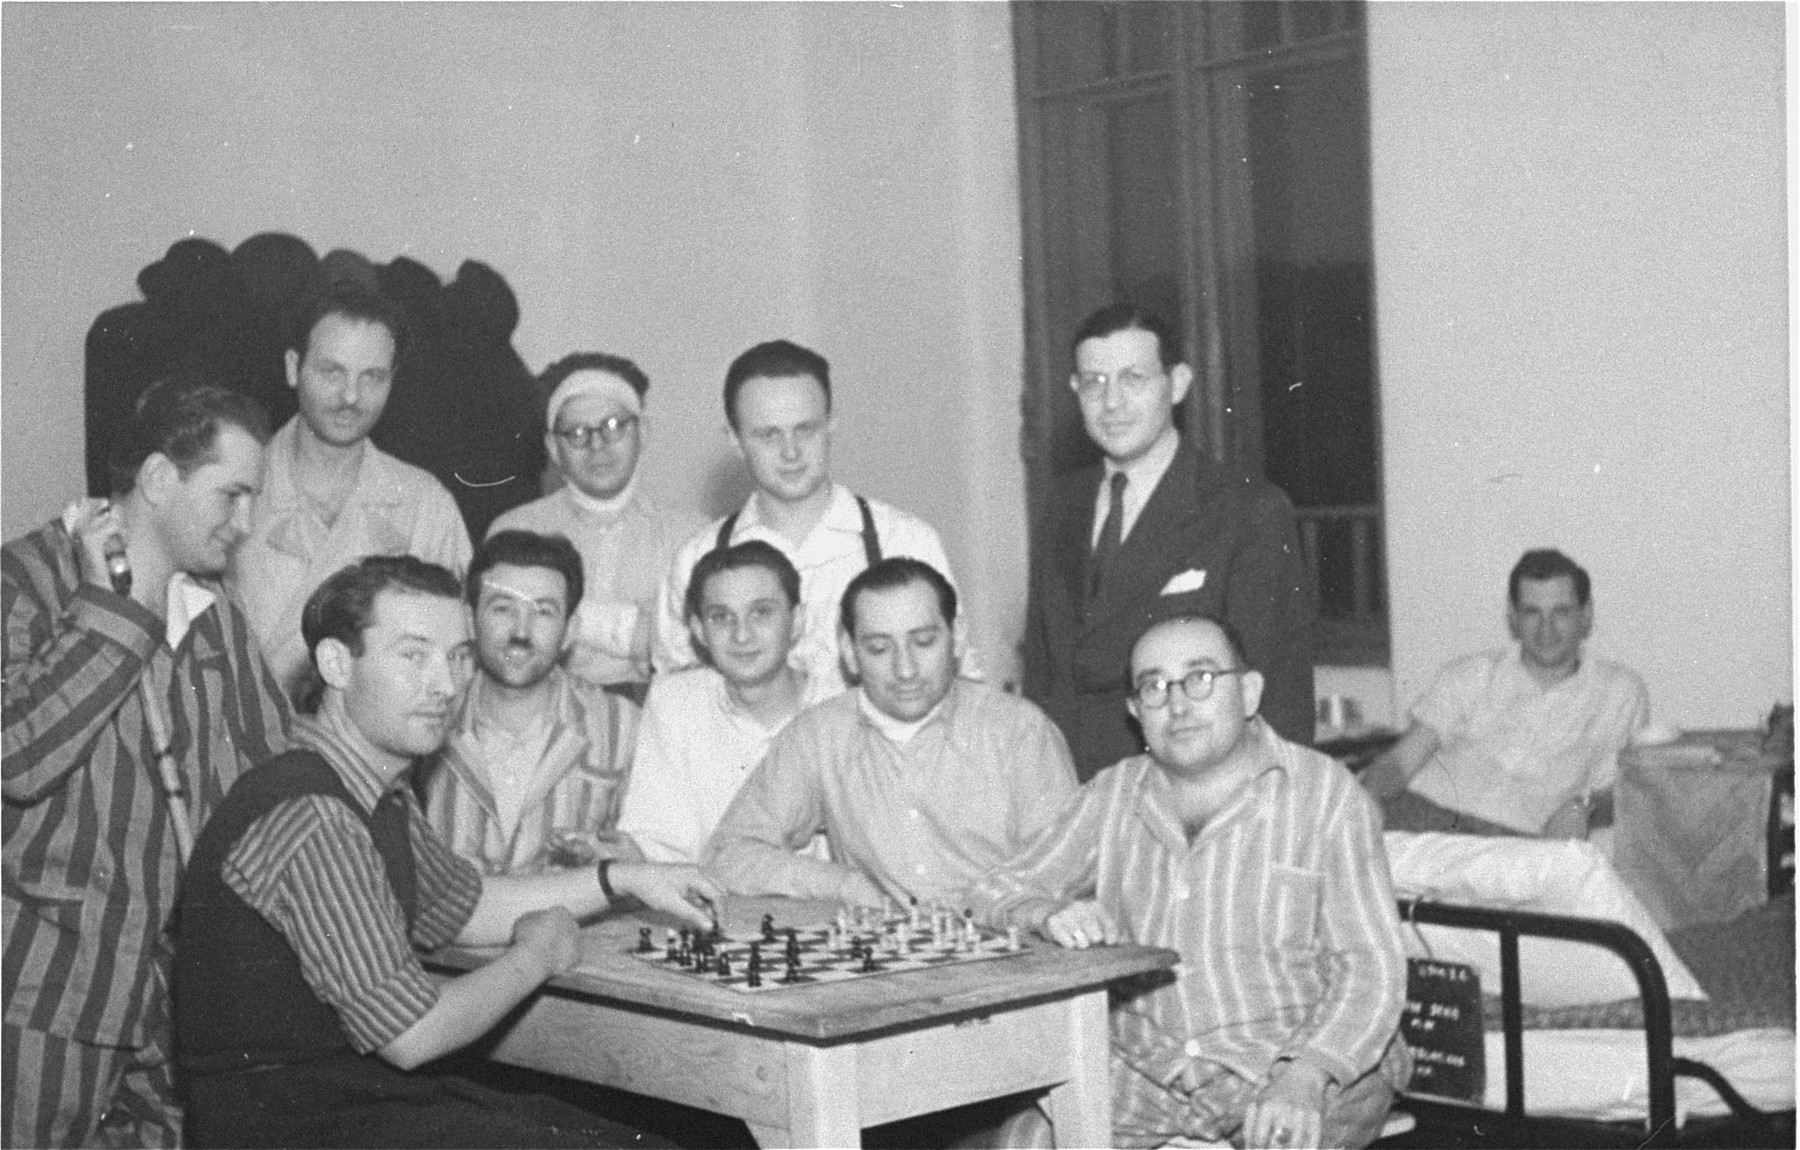 Members of an Hungarian Jewish labor brigade convalescing in a hospital in Budapest.